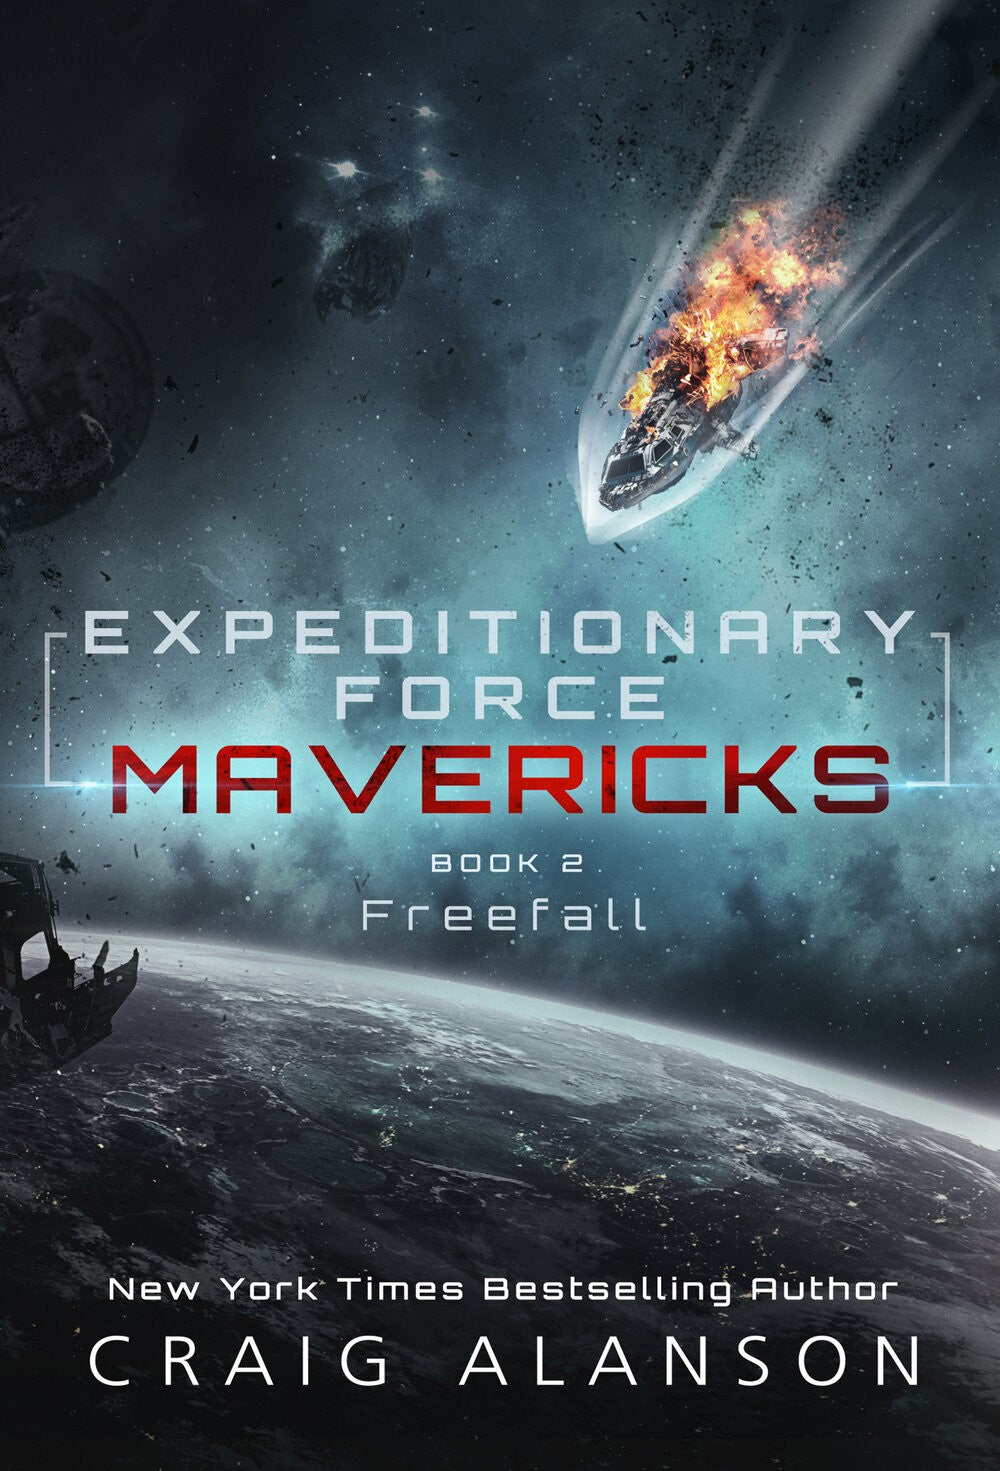 Free Fall (Expeditionary Force Mavericks - Book 2)